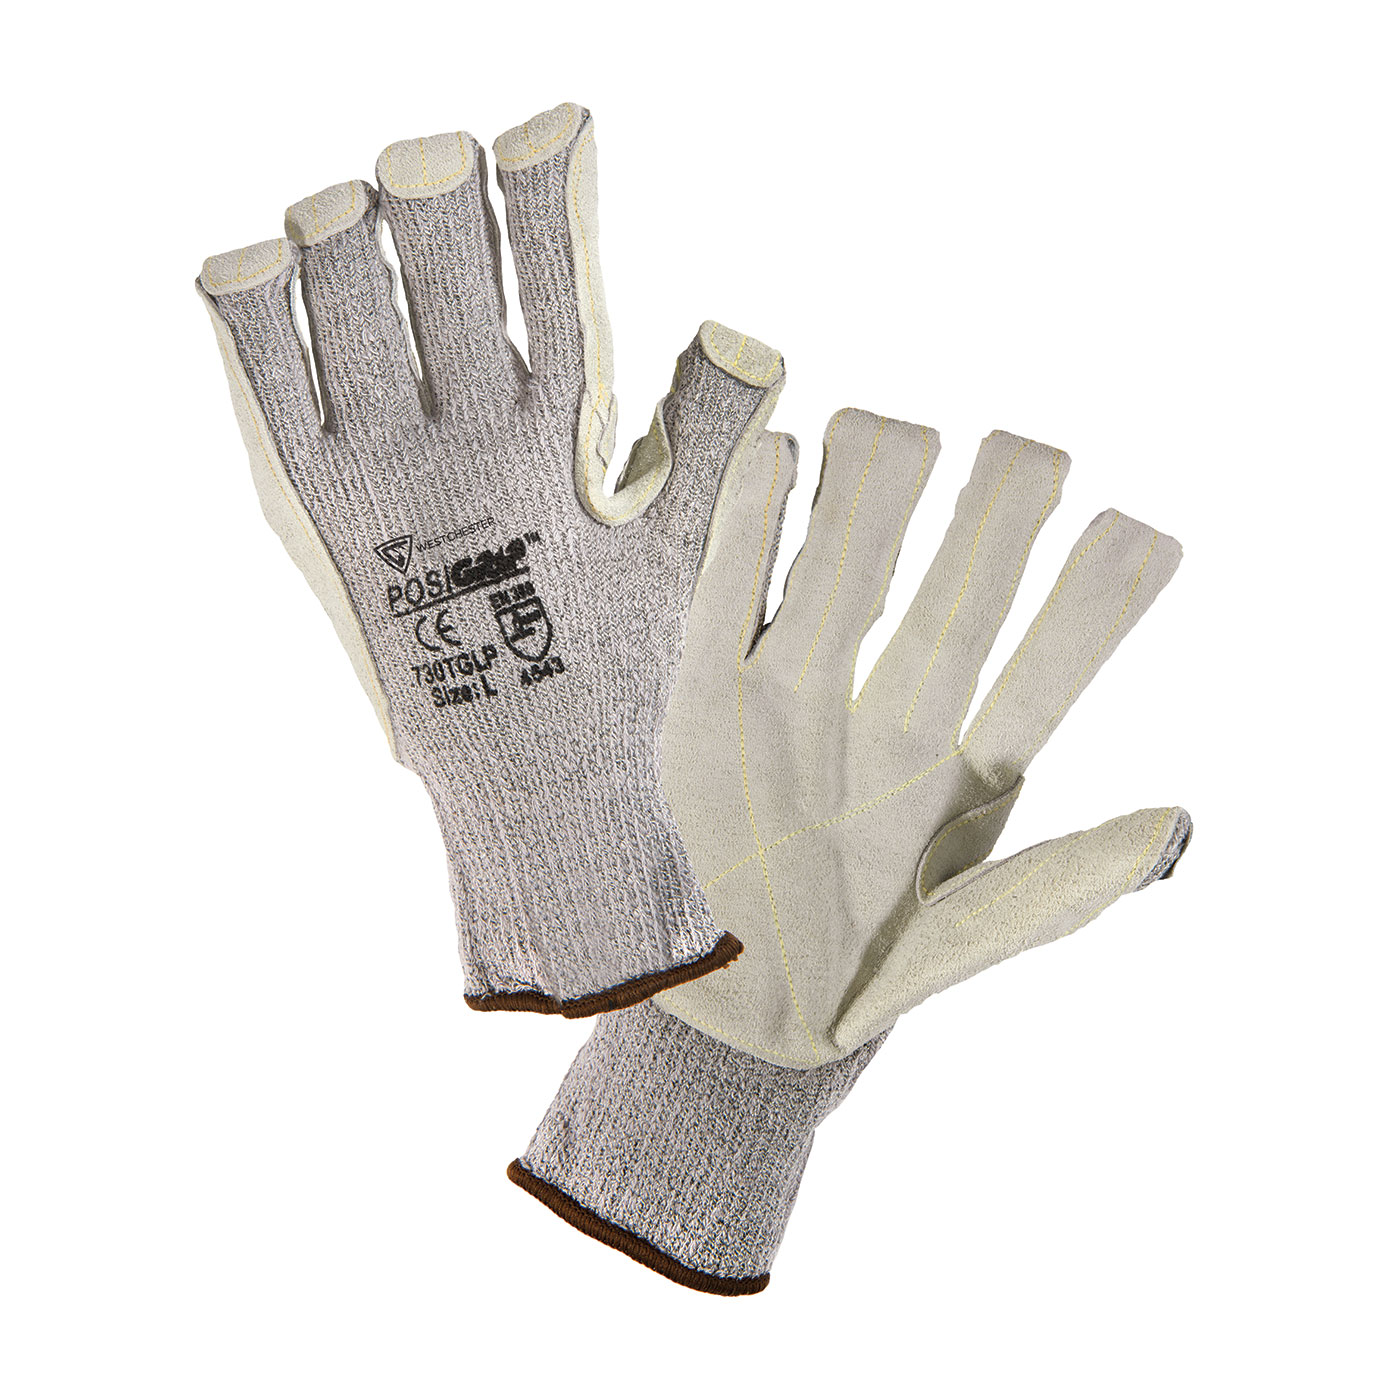 #730TGLP PIP® West Chester PosiGrip®  Seamless Knit HPPE Blended Glove with Split Cowhide Leather Palm and Kevlar® Stitching